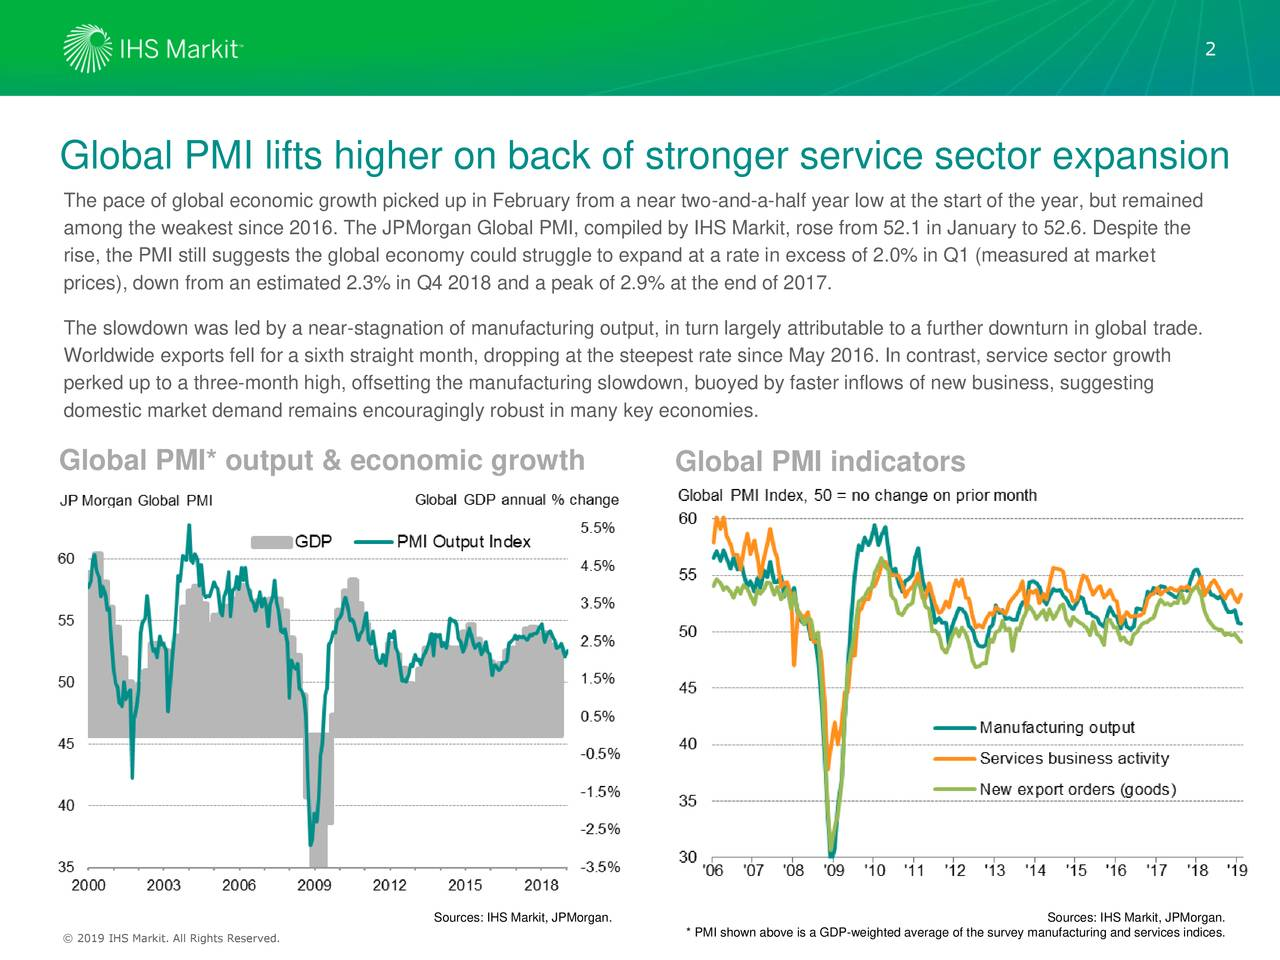 Global PMI lifts higher on back of stronger service sector expansion The pace of global economic growth picked up in February from a near two-and-a-half year low at the start of the year, but remained among the weakest since 2016. The JPMorgan Global PMI, compiled by IHS Markit, rose from 52.1 in January to 52.6. Despite the rise, the PMI still suggests the global economy could struggle to expand at a rate in excess of 2.0% in Q1 (measured at market prices), down from an estimated 2.3% in Q4 2018 and a peak of 2.9% at the end of 2017. The slowdown was led by a near-stagnation of manufacturing output, in turn largely attributable to a further downturn in global trade. Worldwide exports fell for a sixth straight month, dropping at the steepest rate since May 2016. In contrast, service sector growth perked up to a three-month high, offsetting the manufacturing slowdown, buoyed by faster inflows of new business, suggesting domestic market demand remains encouragingly robust in many key economies. Global PMI* output & economic growth Global PMI indicators Sources: IHS Markit, JPMorgan. Sources: IHS Markit, JPMorgan. ©© 2016 IHS Markit. All Rights Reserved. * PMI shown above is a GDP-weighted average of the survey manufacturing and services indices.